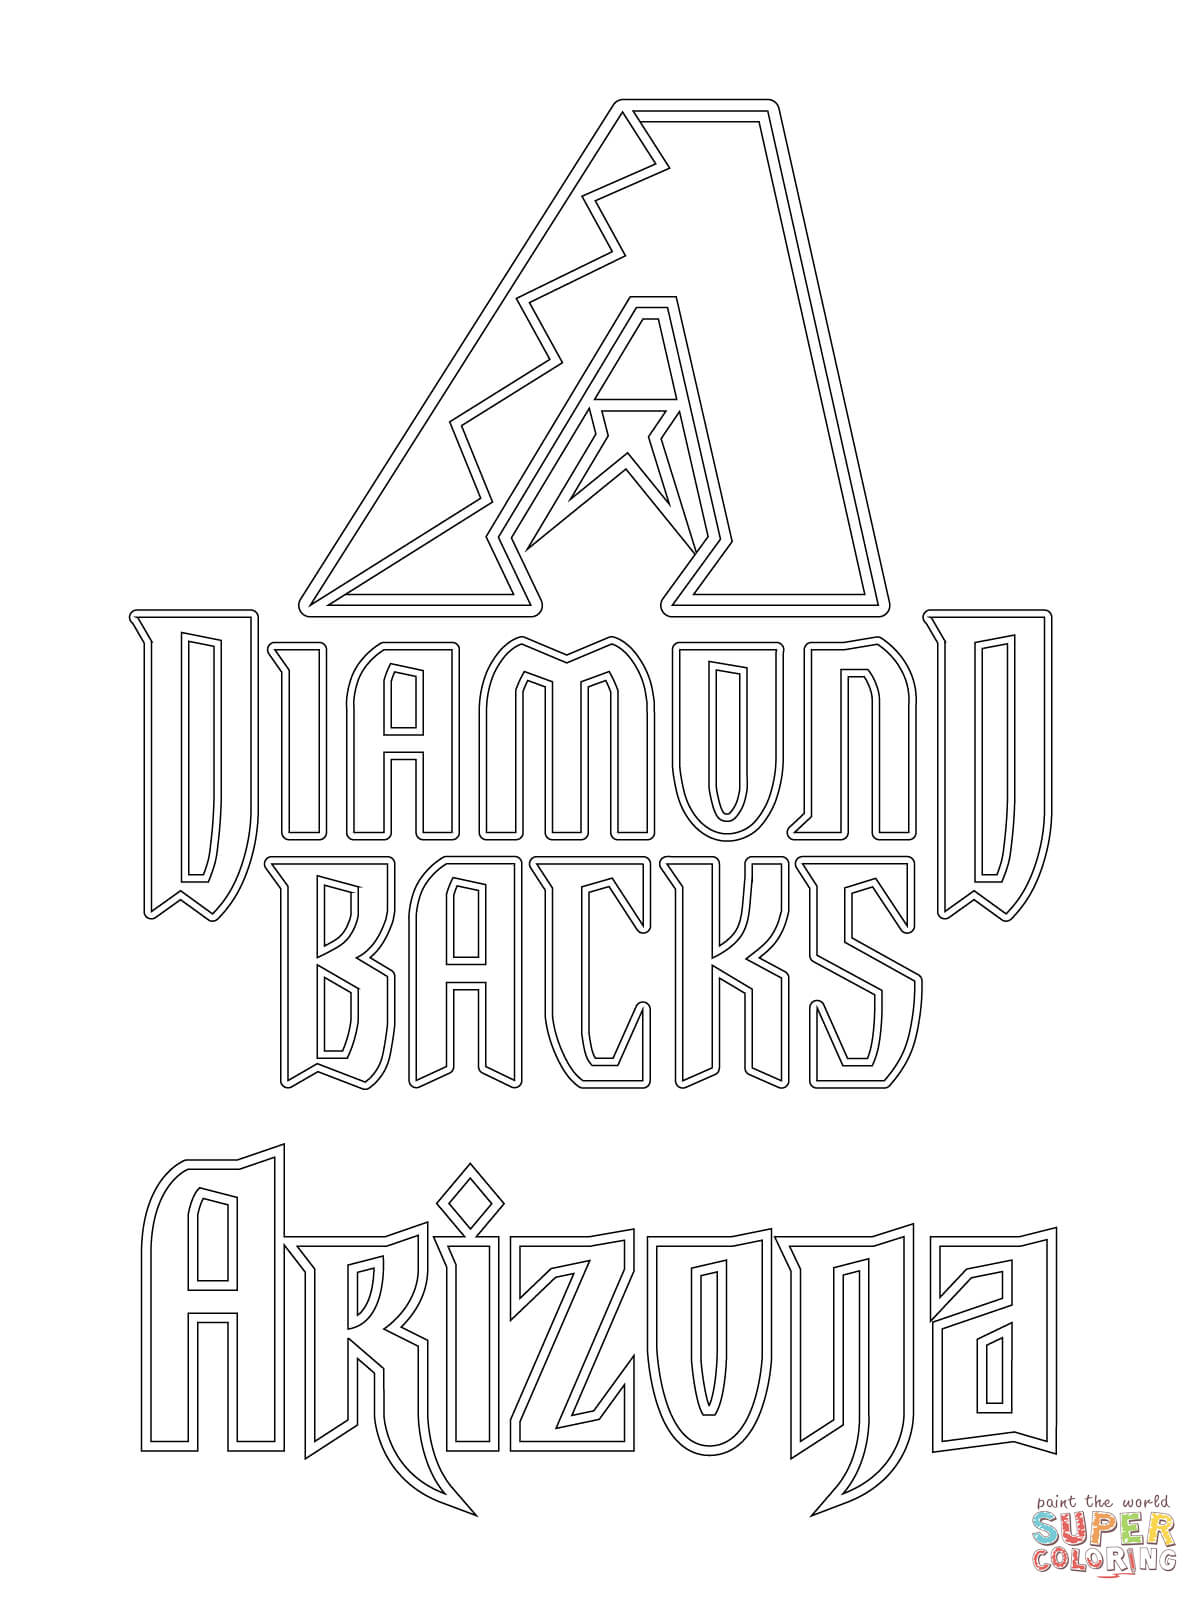 10 pics of arizona wildcats logo coloring pages arizona